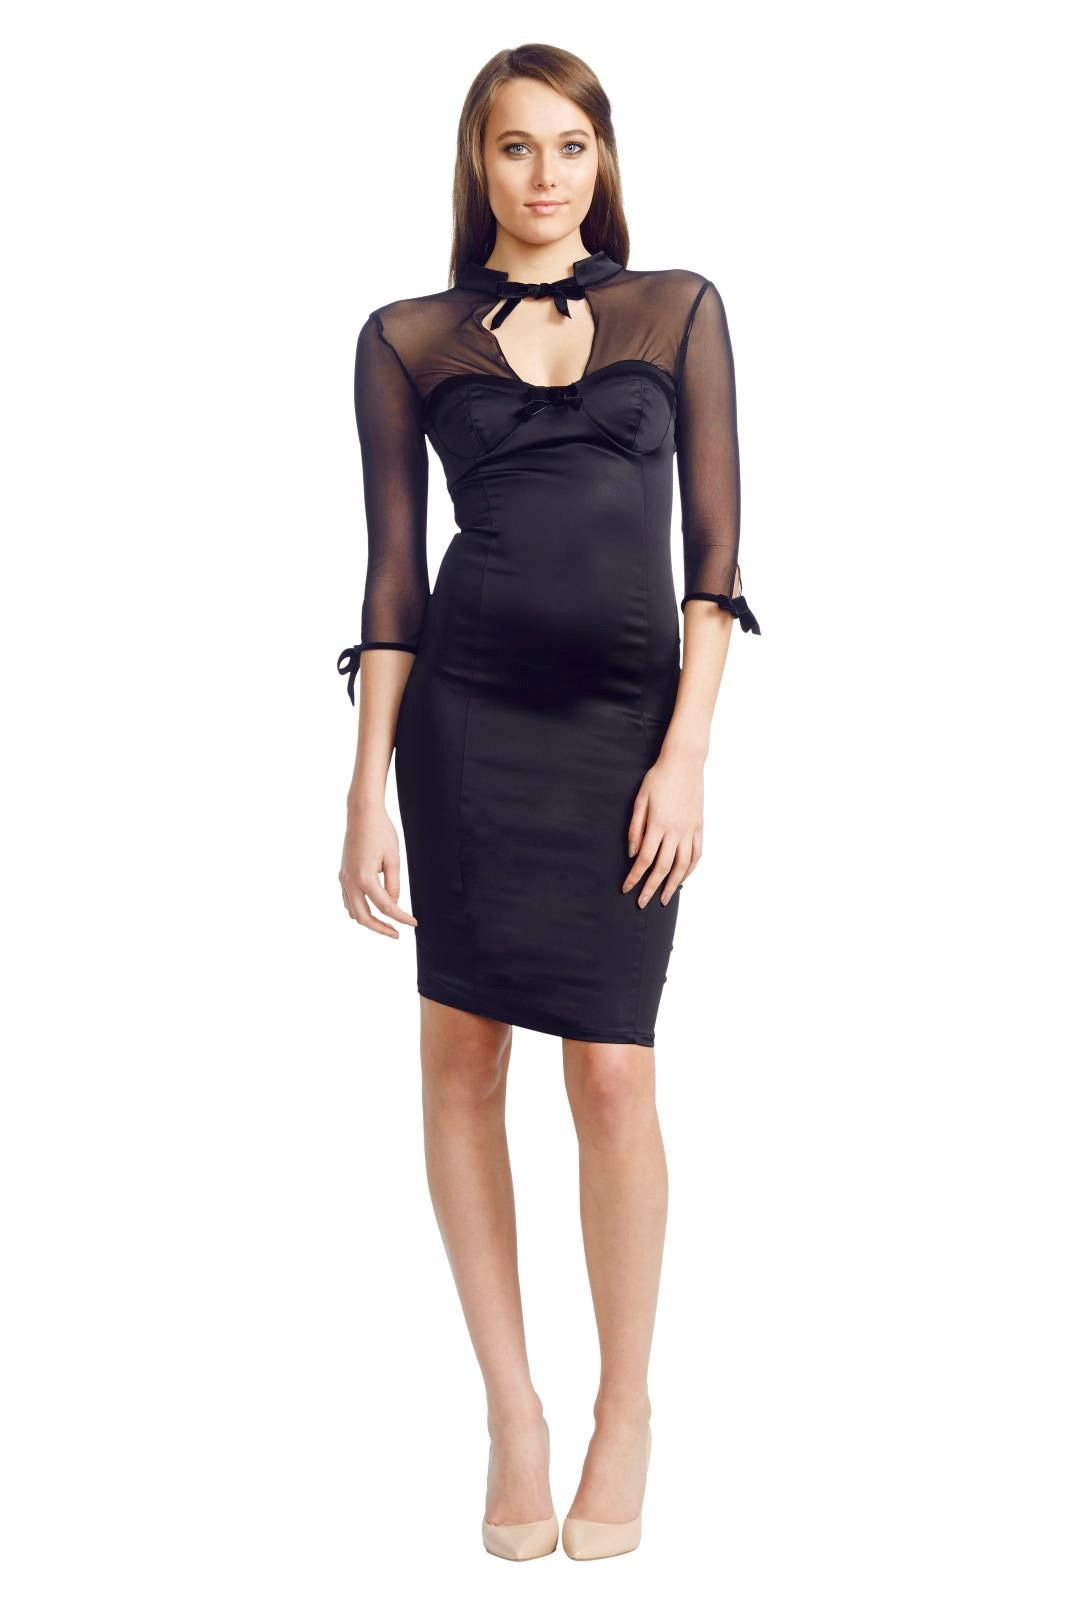 Wheels and Dollbaby - Opium Dress - Black - Front